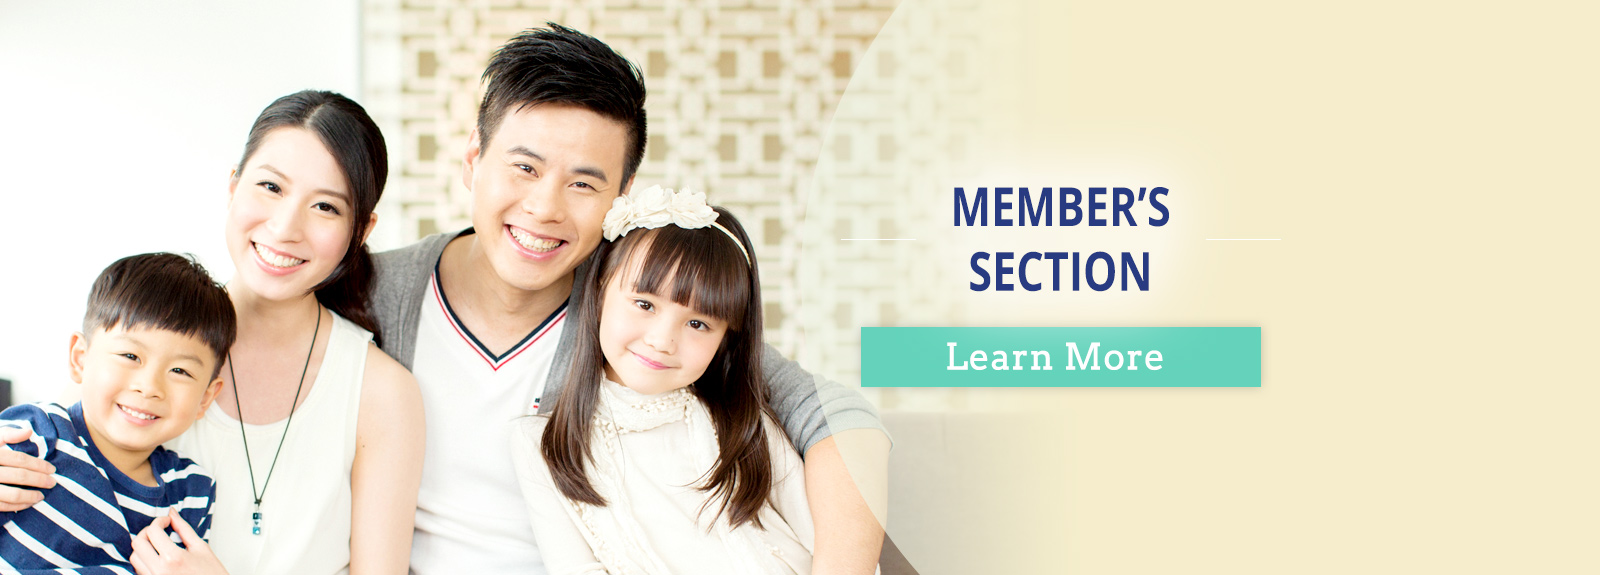 Member's Section. Learn More.